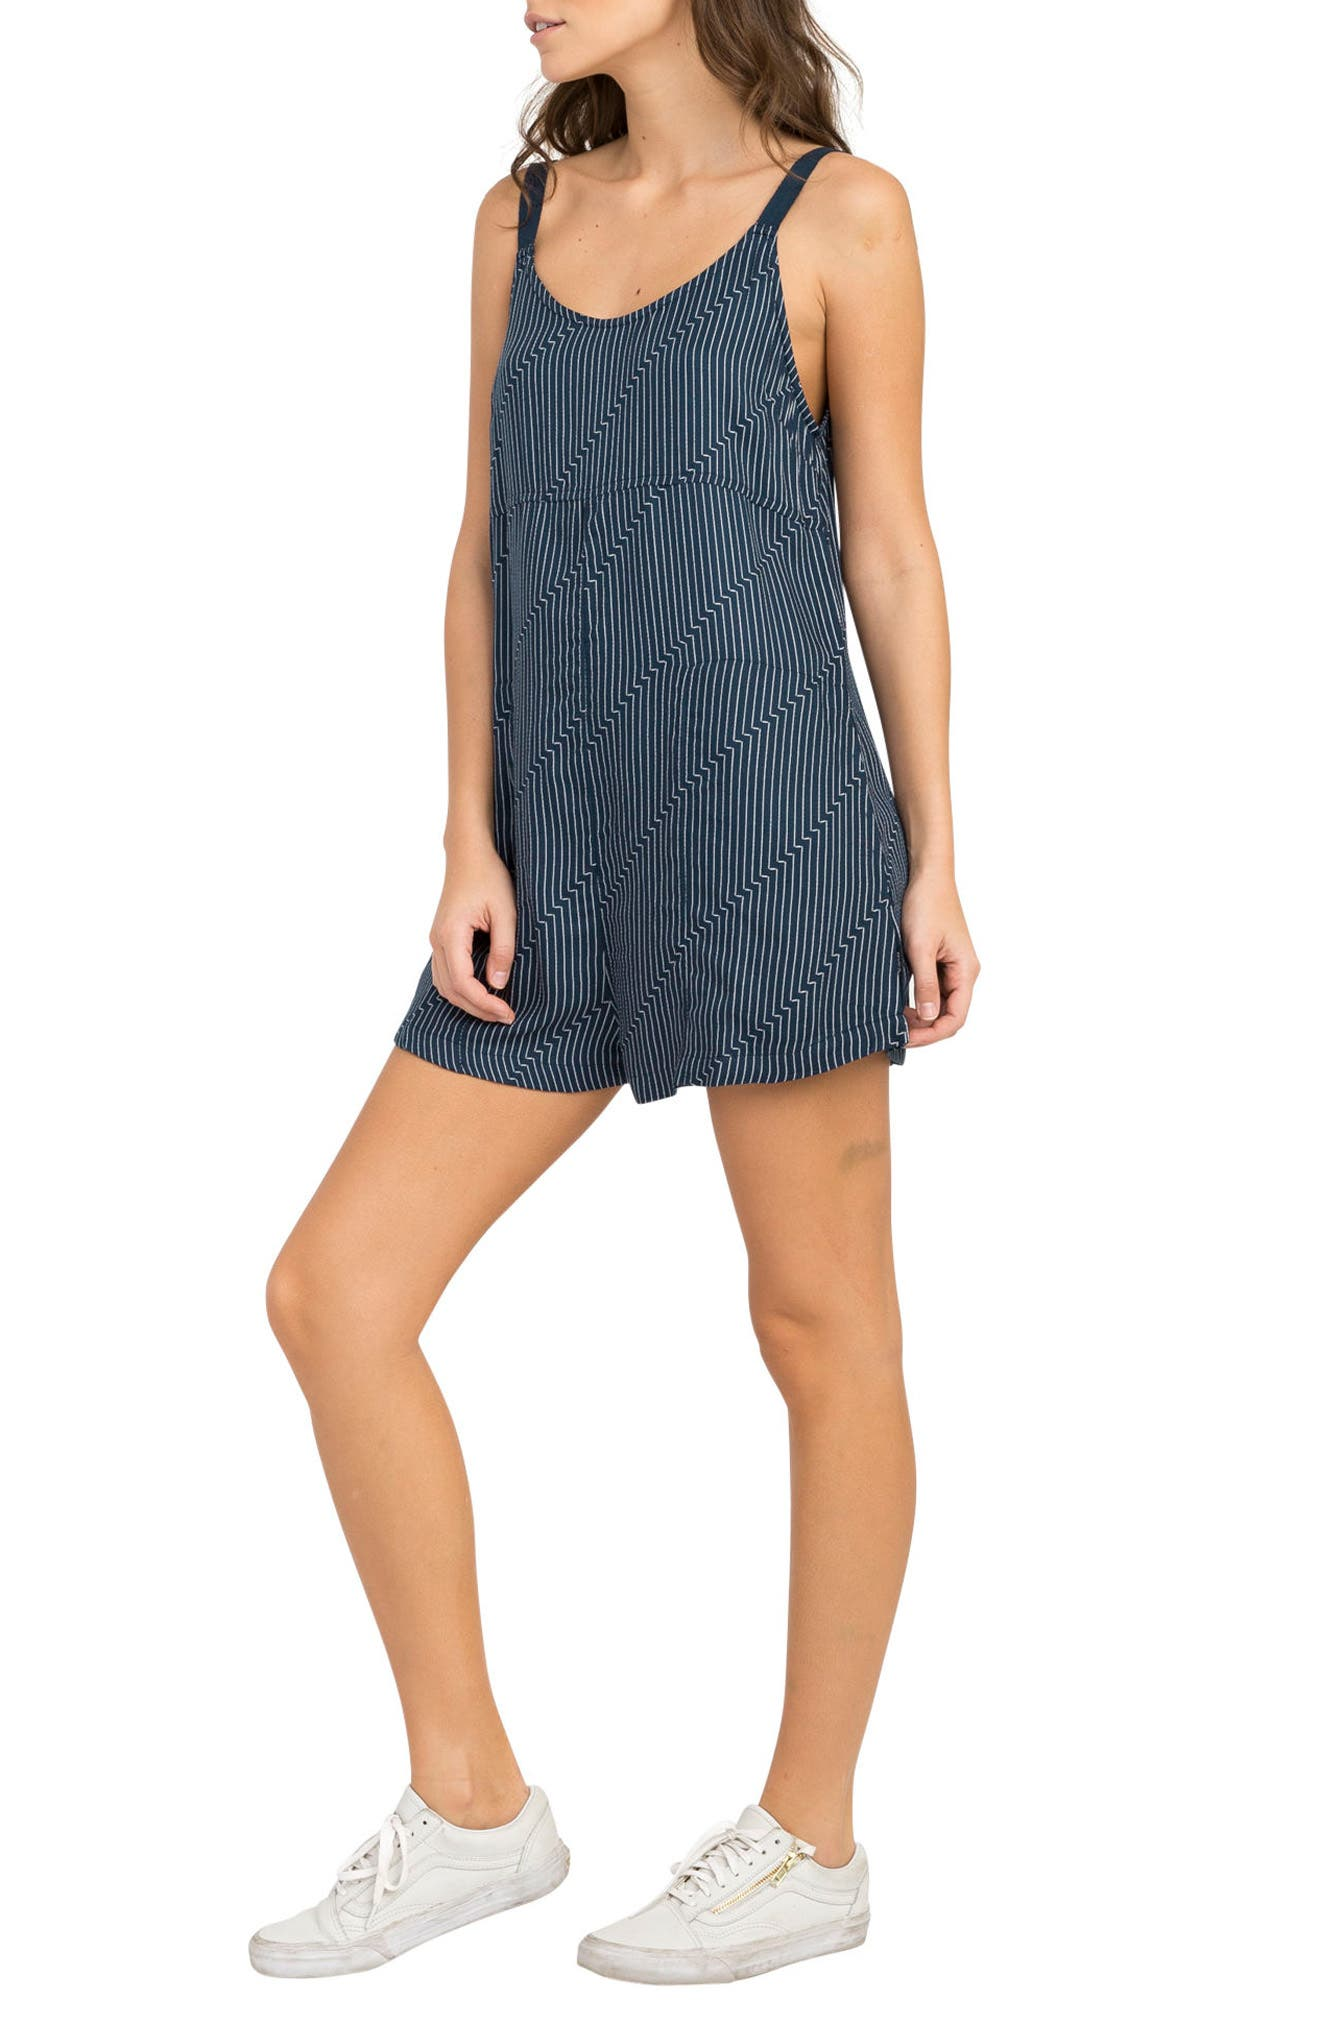 Jury's Out Zigzag Romper,                         Main,                         color, 410